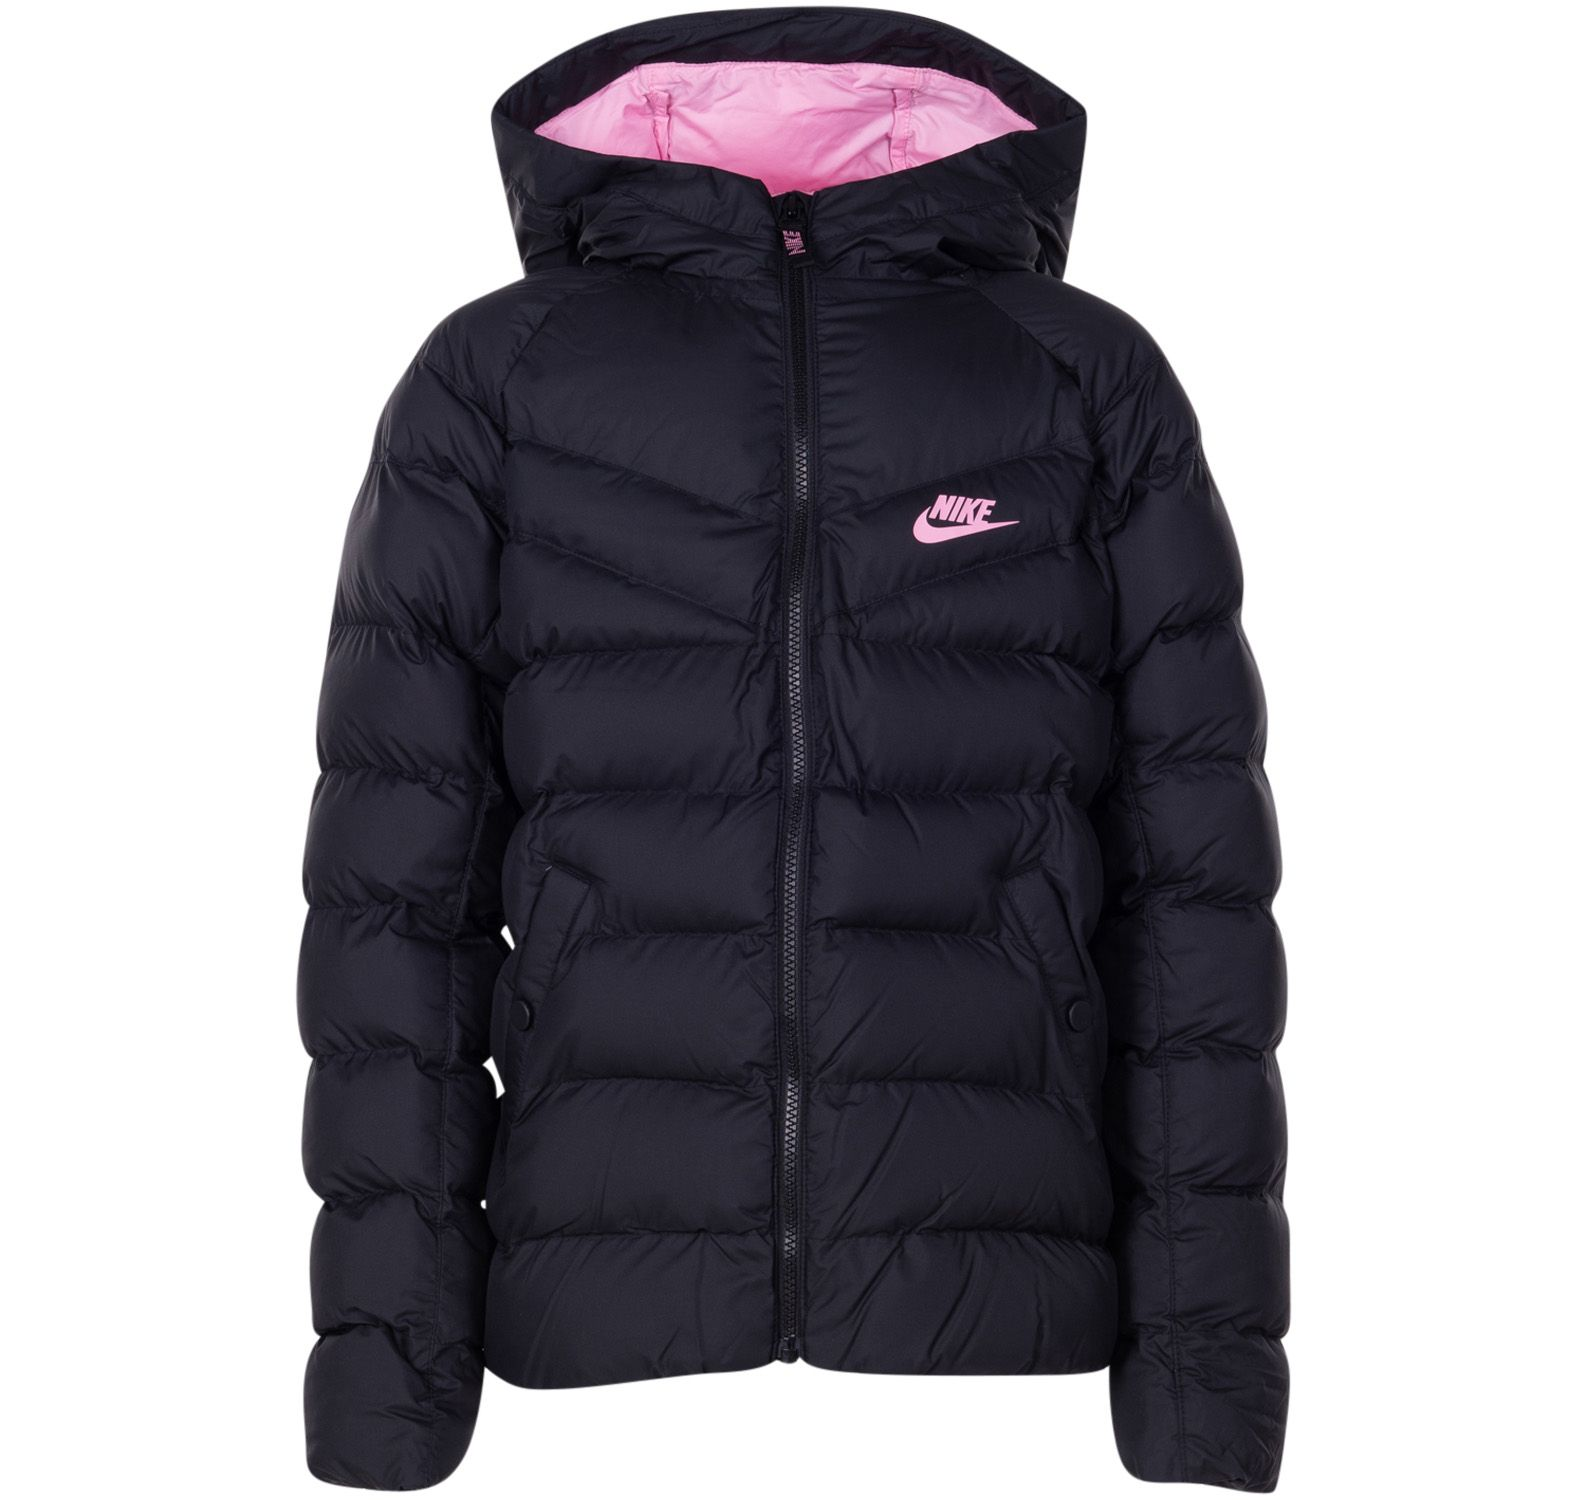 nike sportswear kids hooded jacket, blackblackblackpink